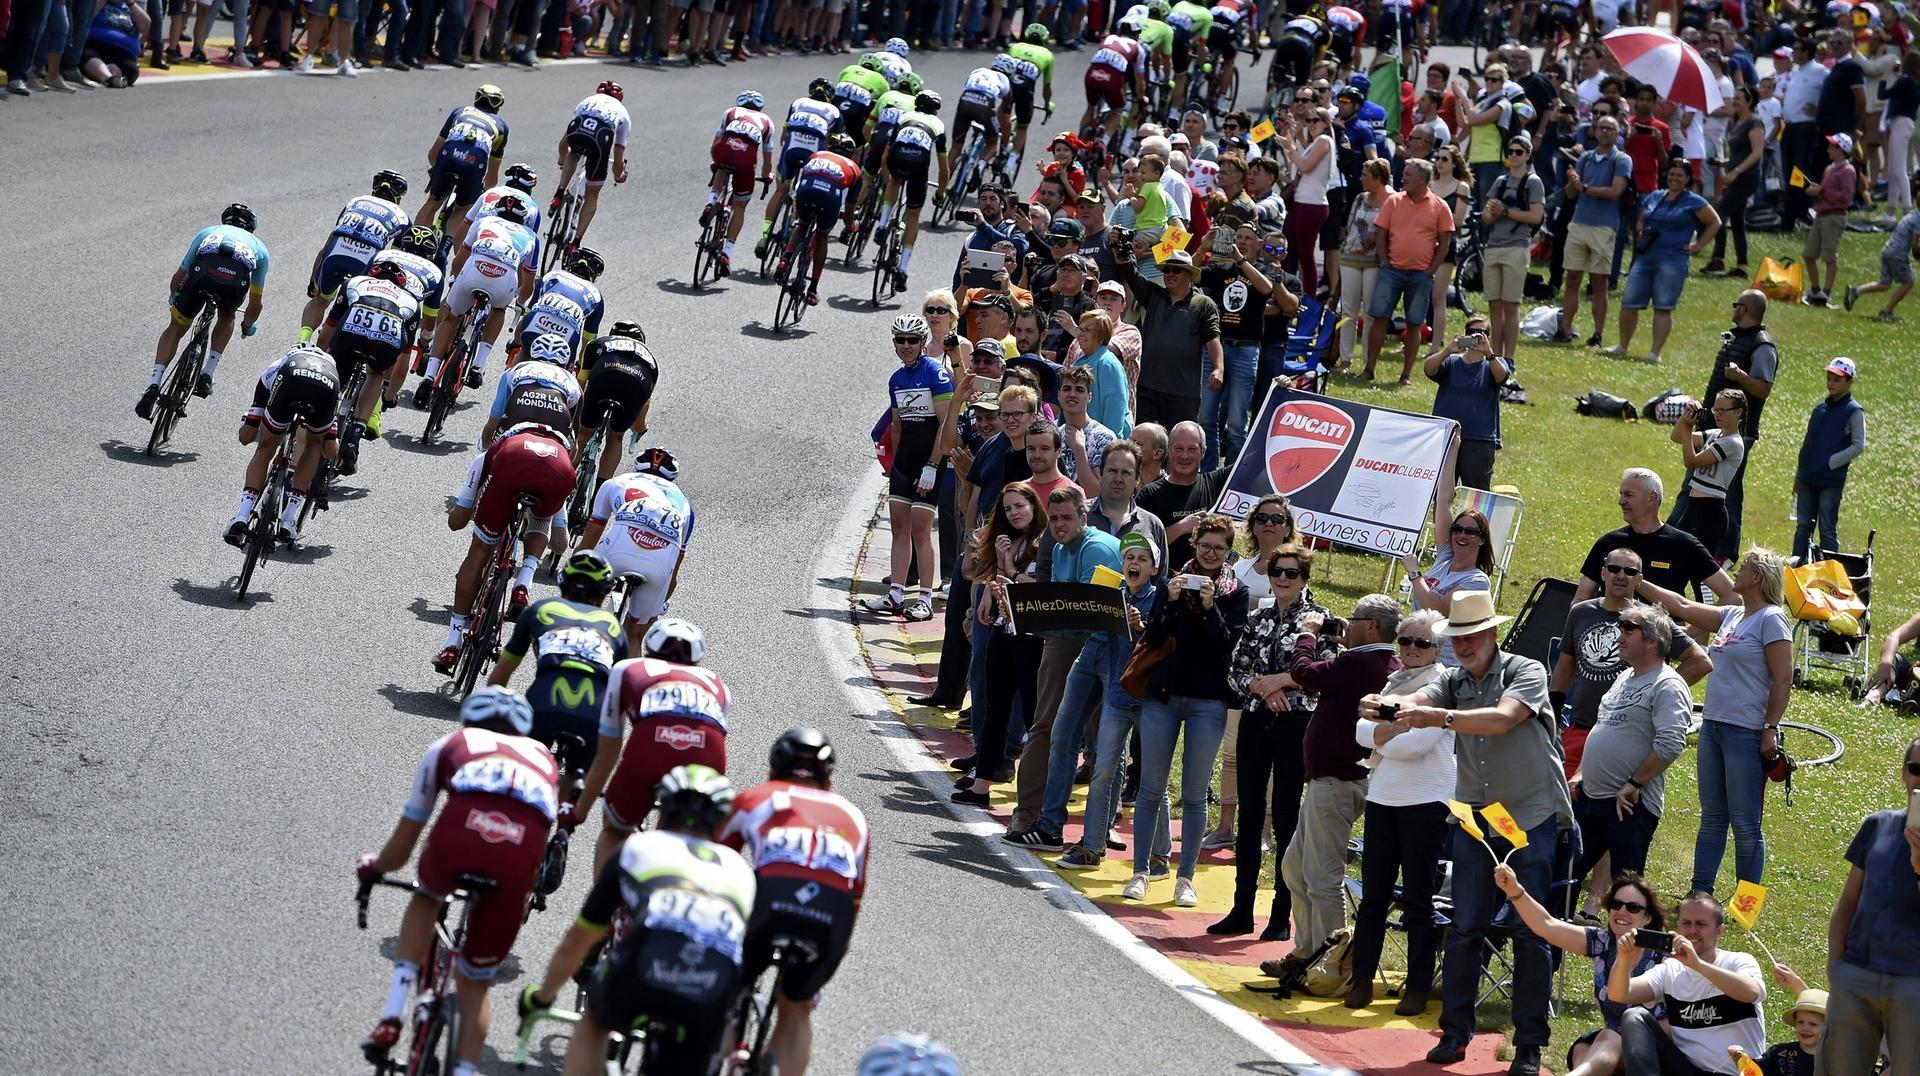 6. Etappe: Vesoul - Troyes: Tour de France im Live-Ticker. LONGWY LUXEMBOURG JULY 3 Illustration picture of the peloton passing on the famous race circuit (Quelle: Photo News Panoramic)